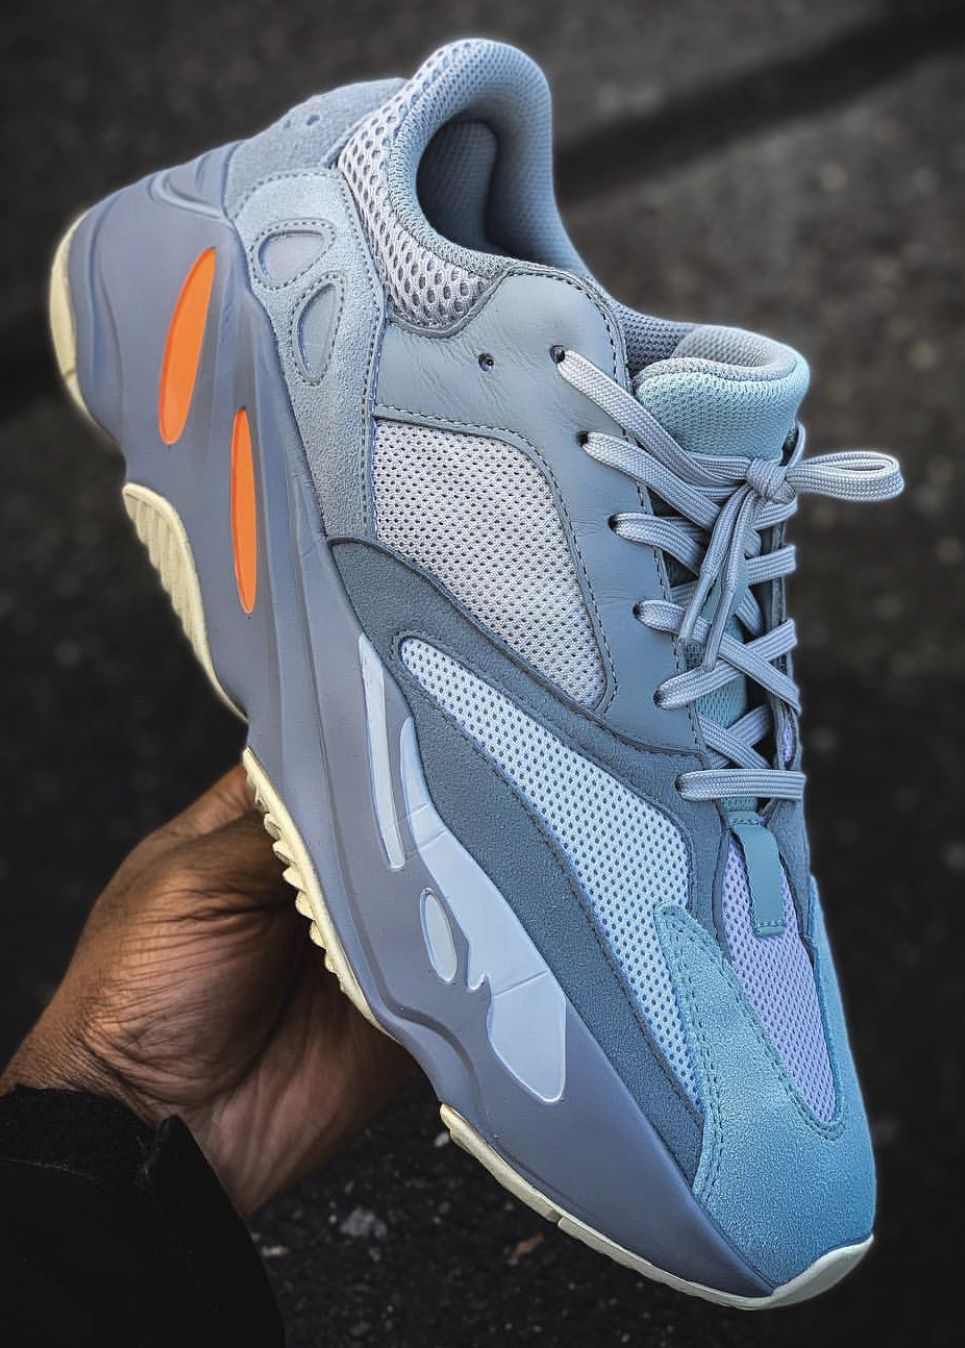 c6a2889e adidas Yeezy Boost 700 Inertia releasing on the 9th of march! #getallpairs  #allpairs #allpairsapp #adidas #yeezy #yeezy700 #inertia #sneakers  #hypebeast